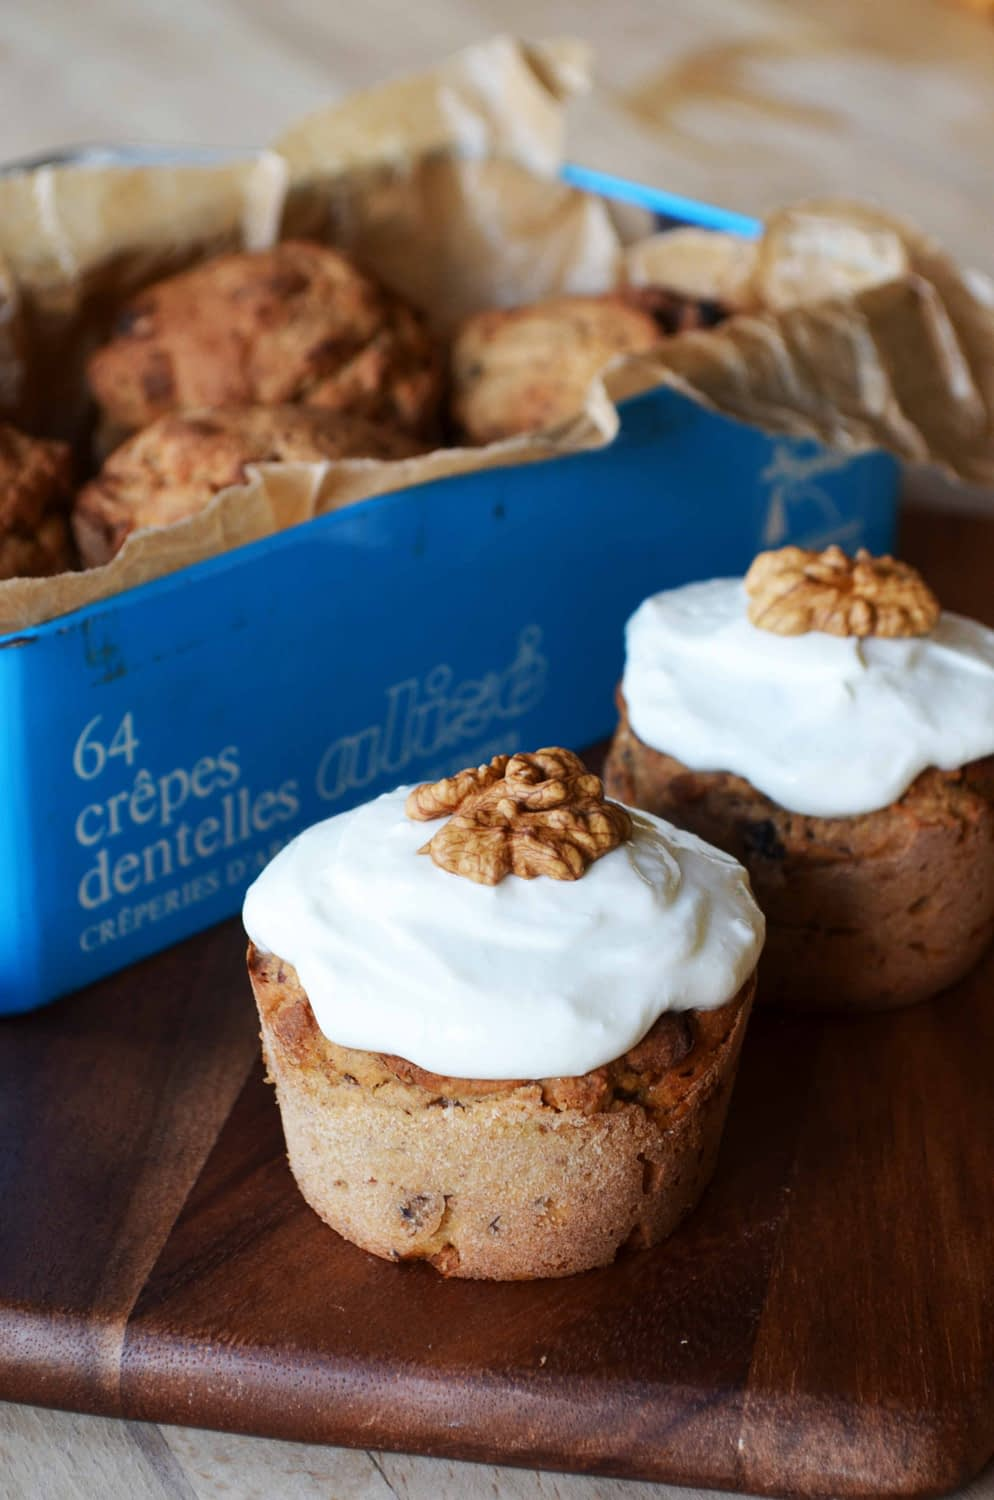 Apple Muffins with Walnuts, Cinnamon and Zante Currants